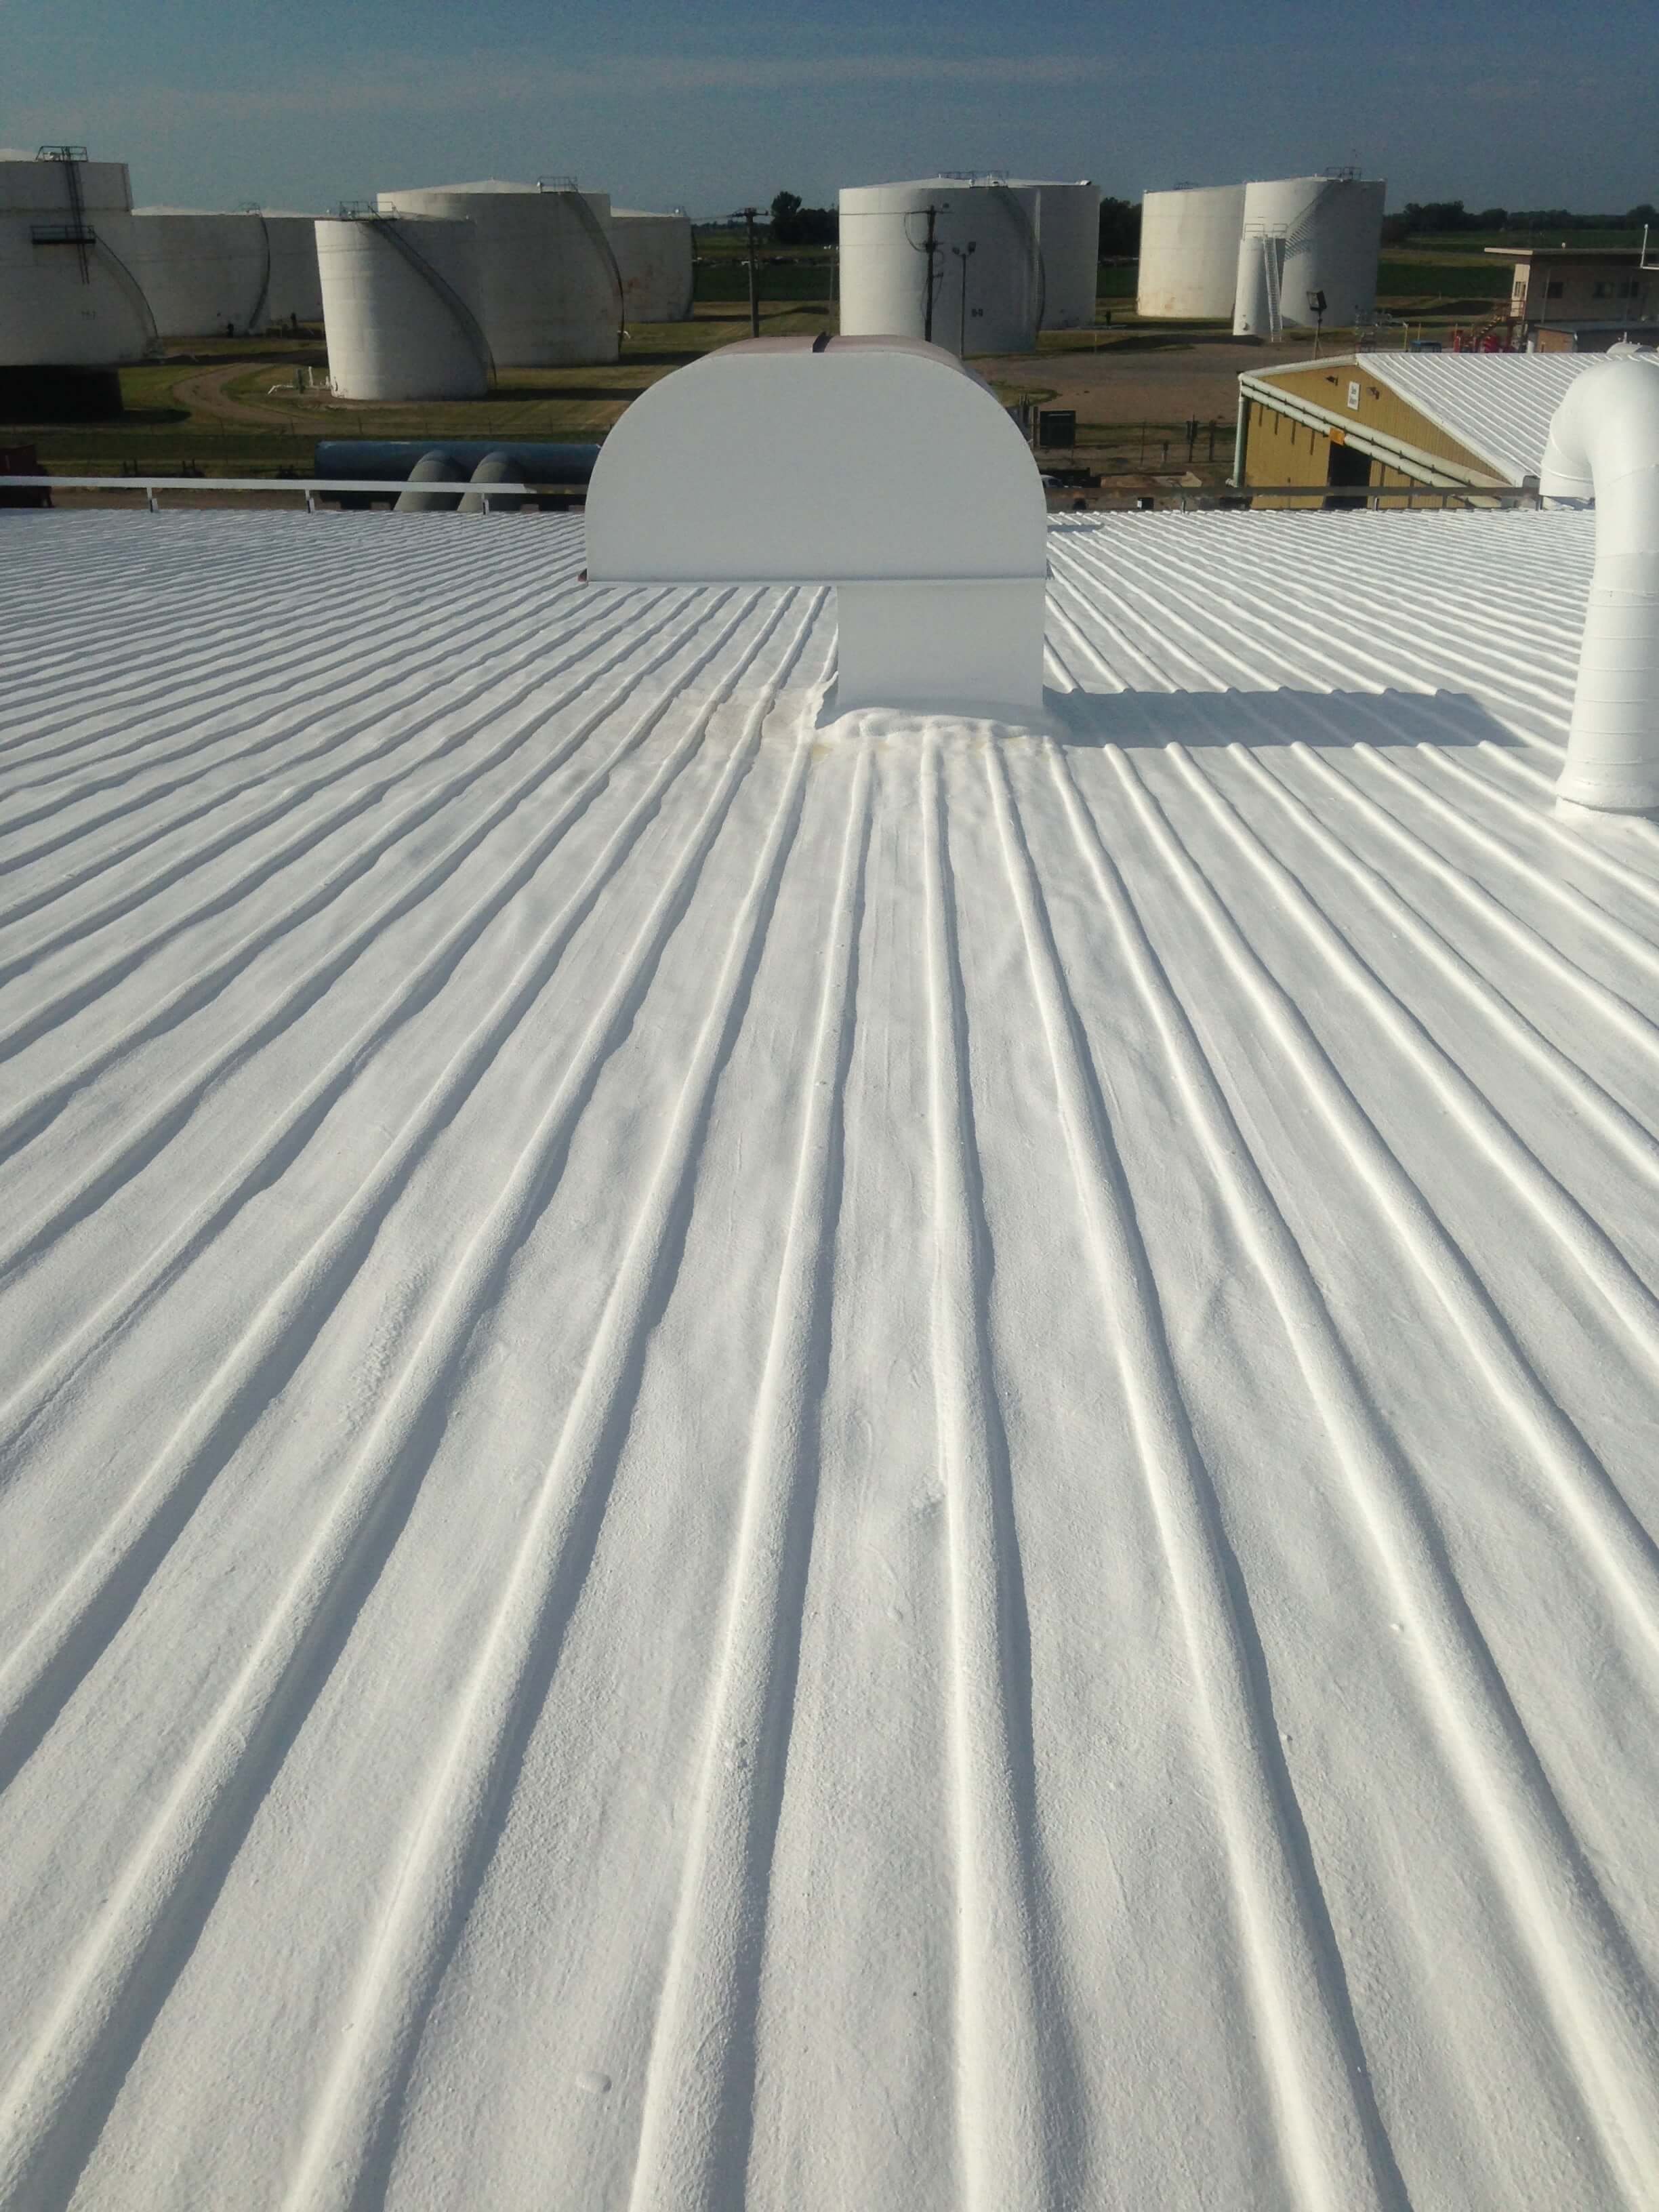 Spray Polyurethane Foam Roofing System Spray Foam Roofing